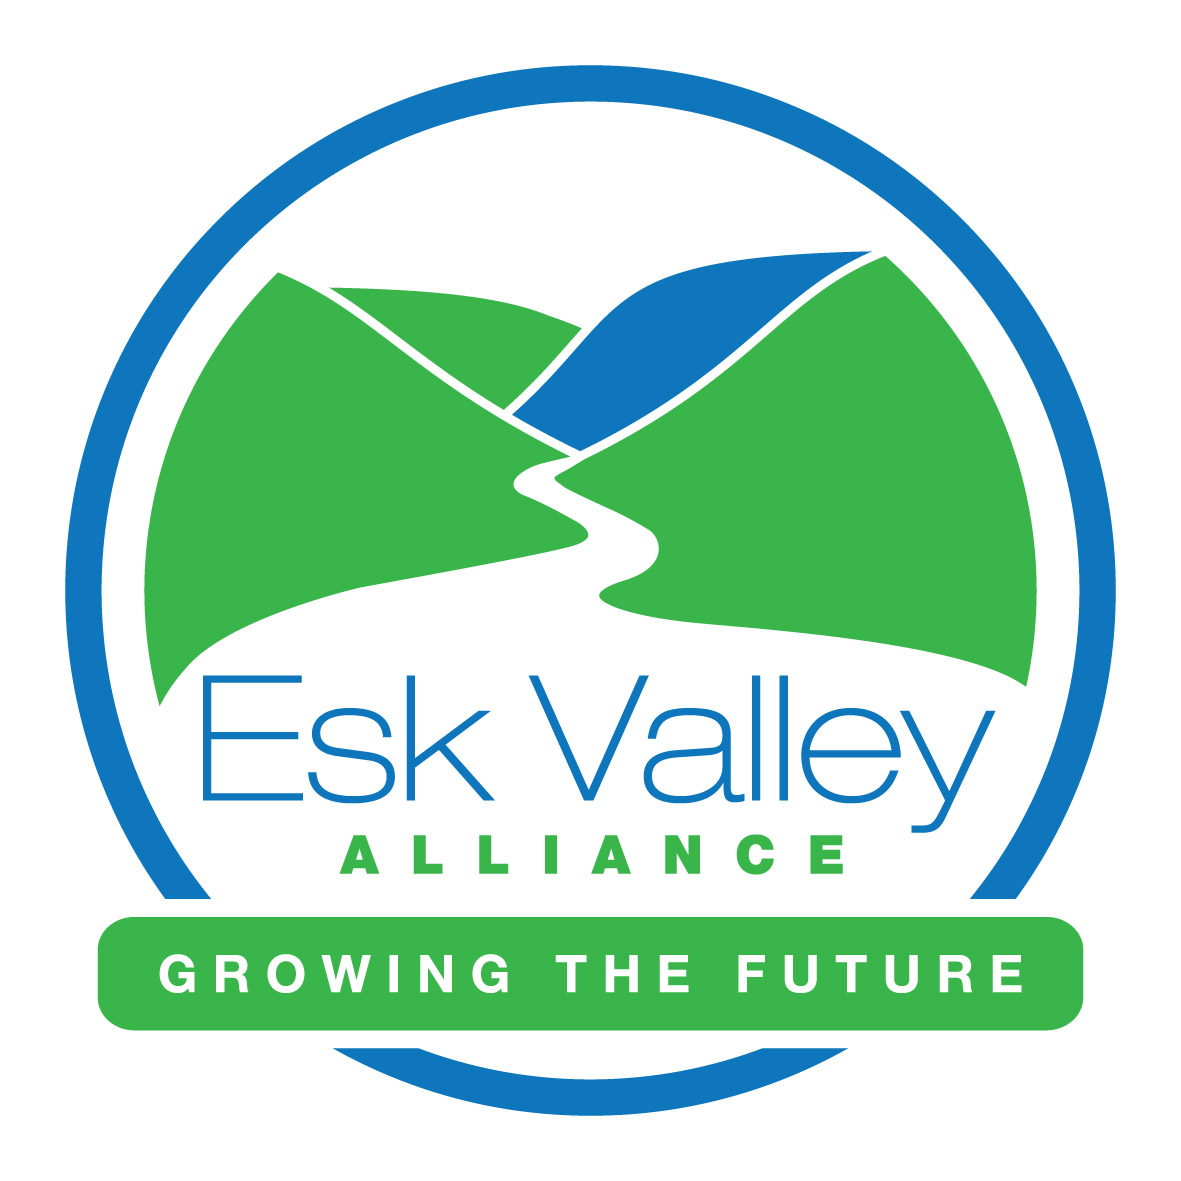 ESK Valley Alliance Logo - growing the future